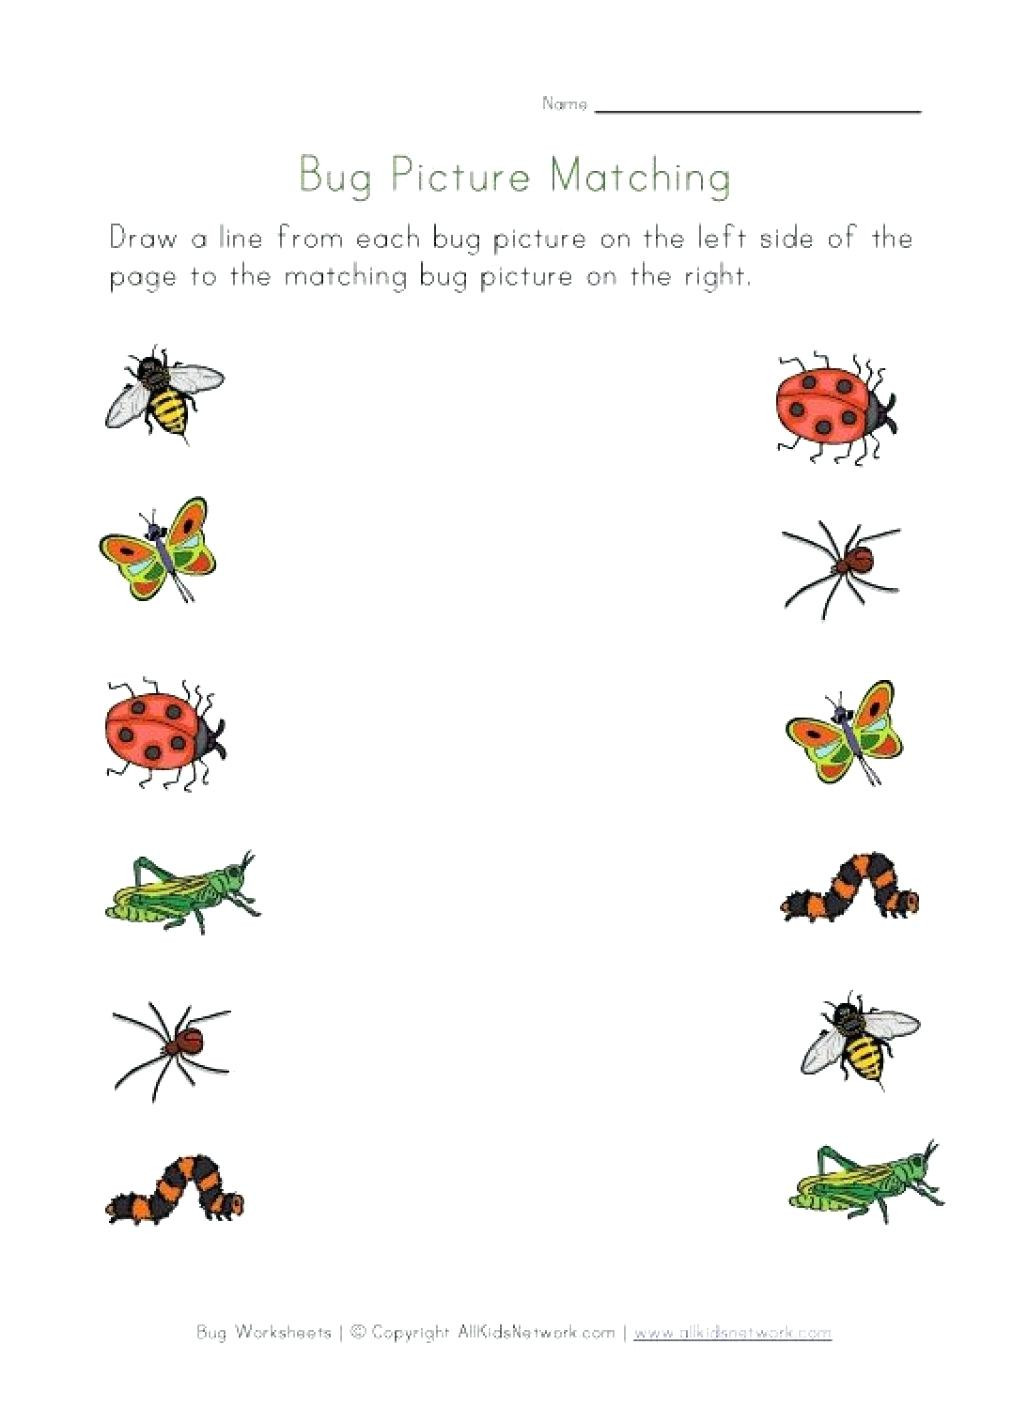 Insect Worksheets for Preschoolers Bugs Worksheets for Preschool Clover Hatunisi